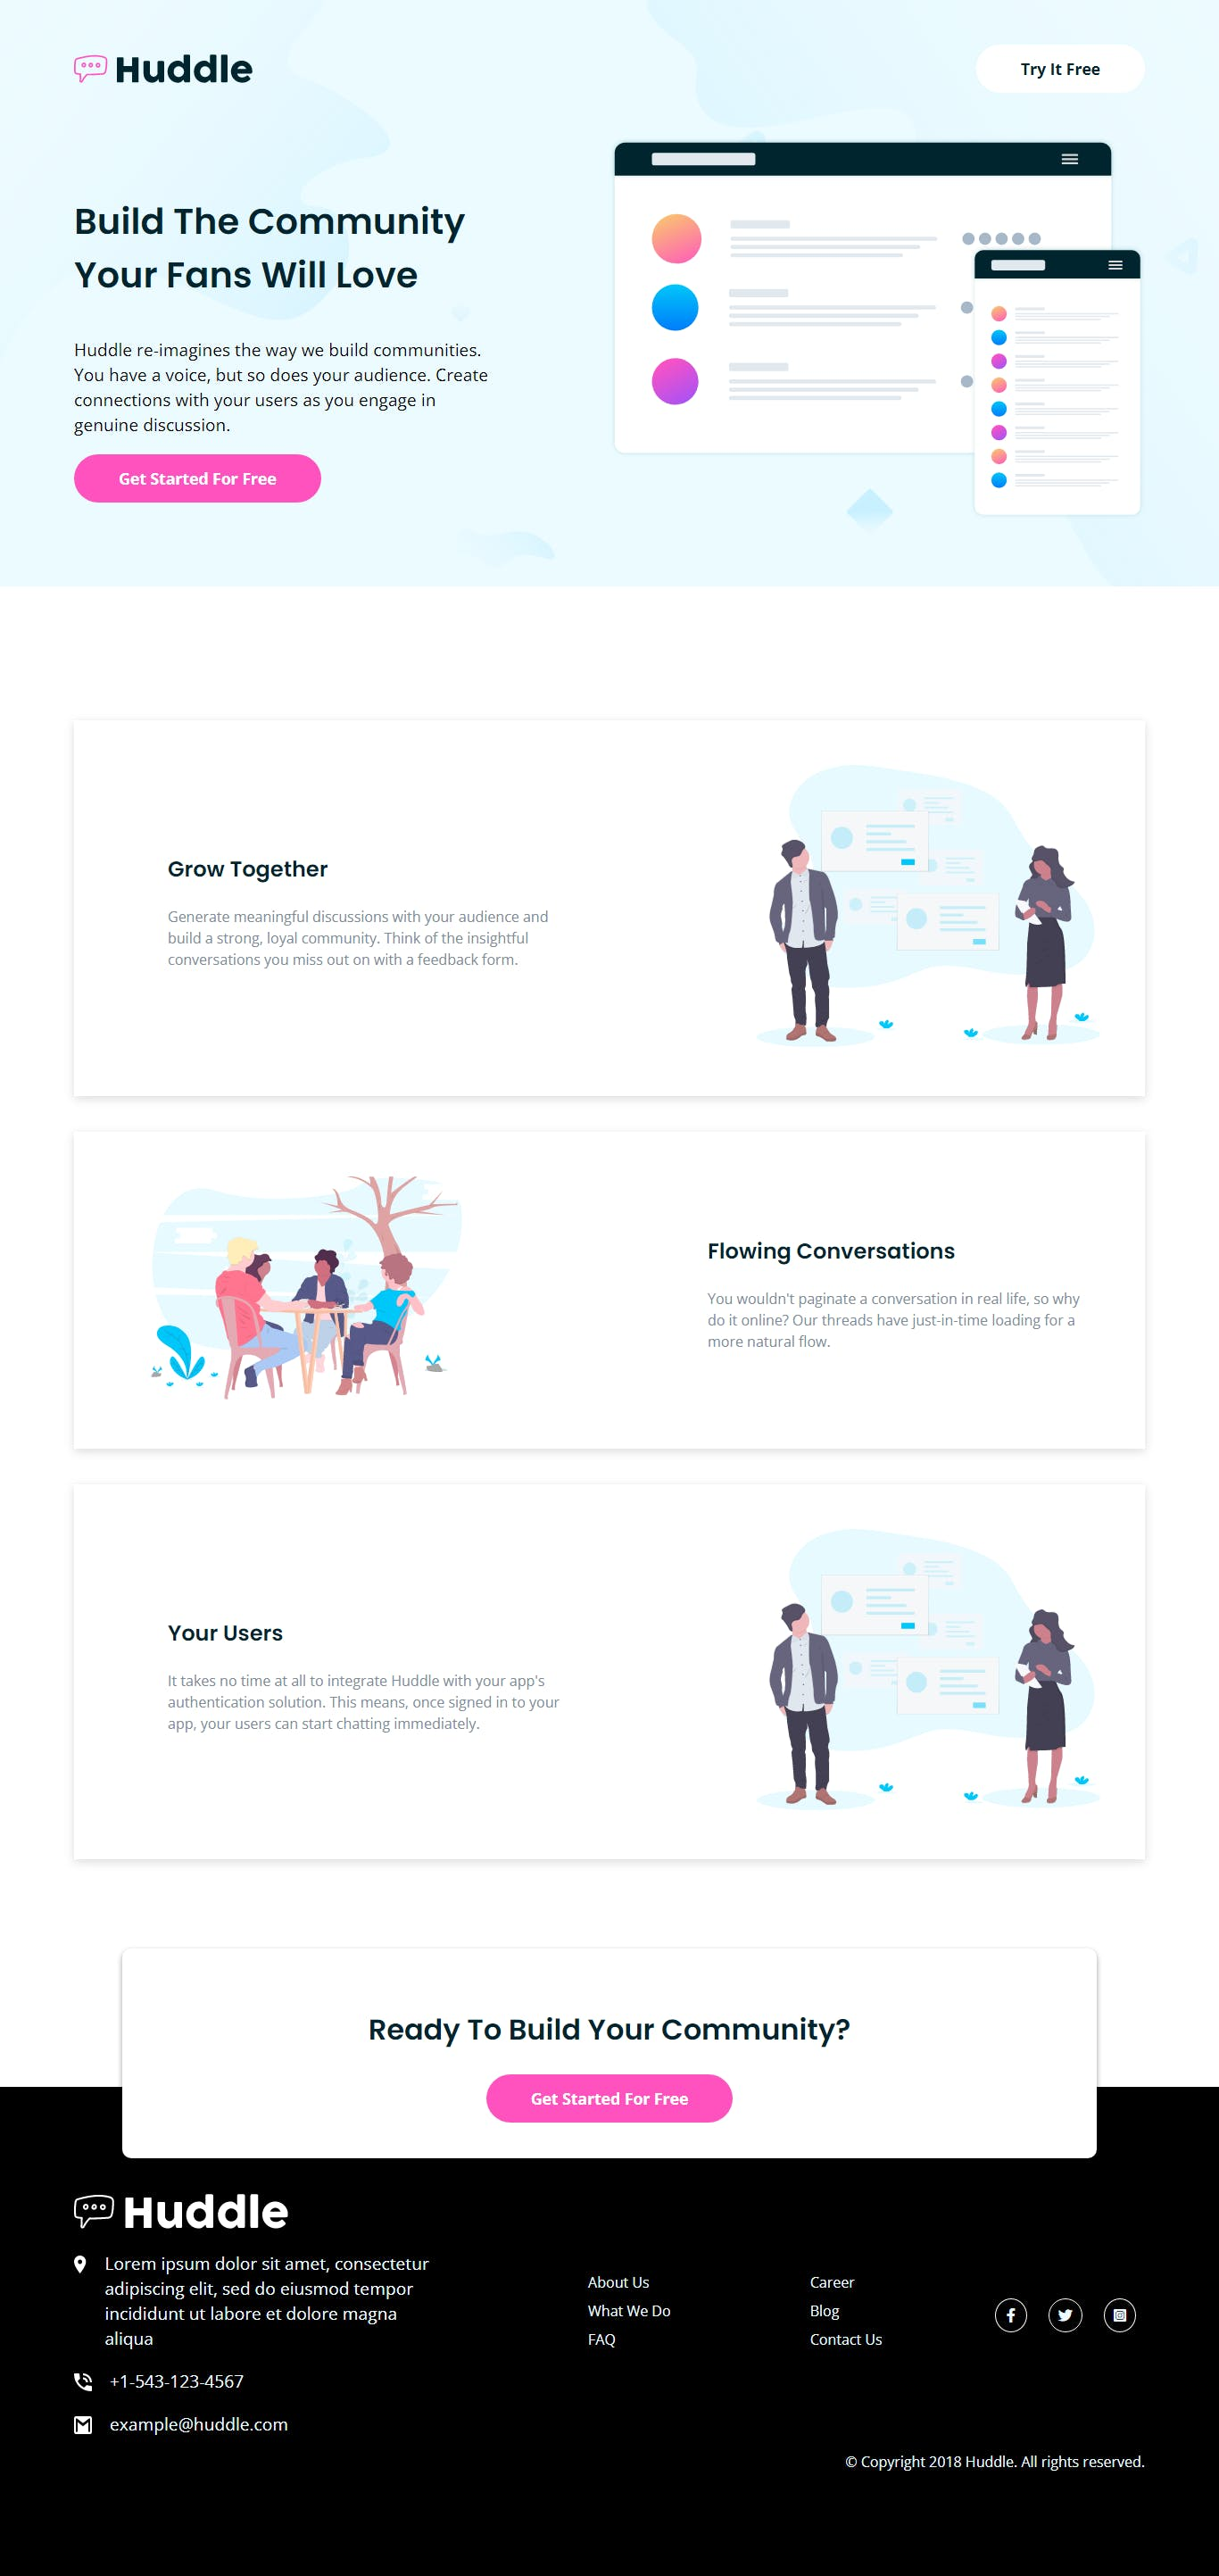 screencapture-127-0-0-1-5500-build-10-css-projects-huddle-landing-page-with-alternating-feature-blocks-master-index-html-2021-10-13-02_12_58.png